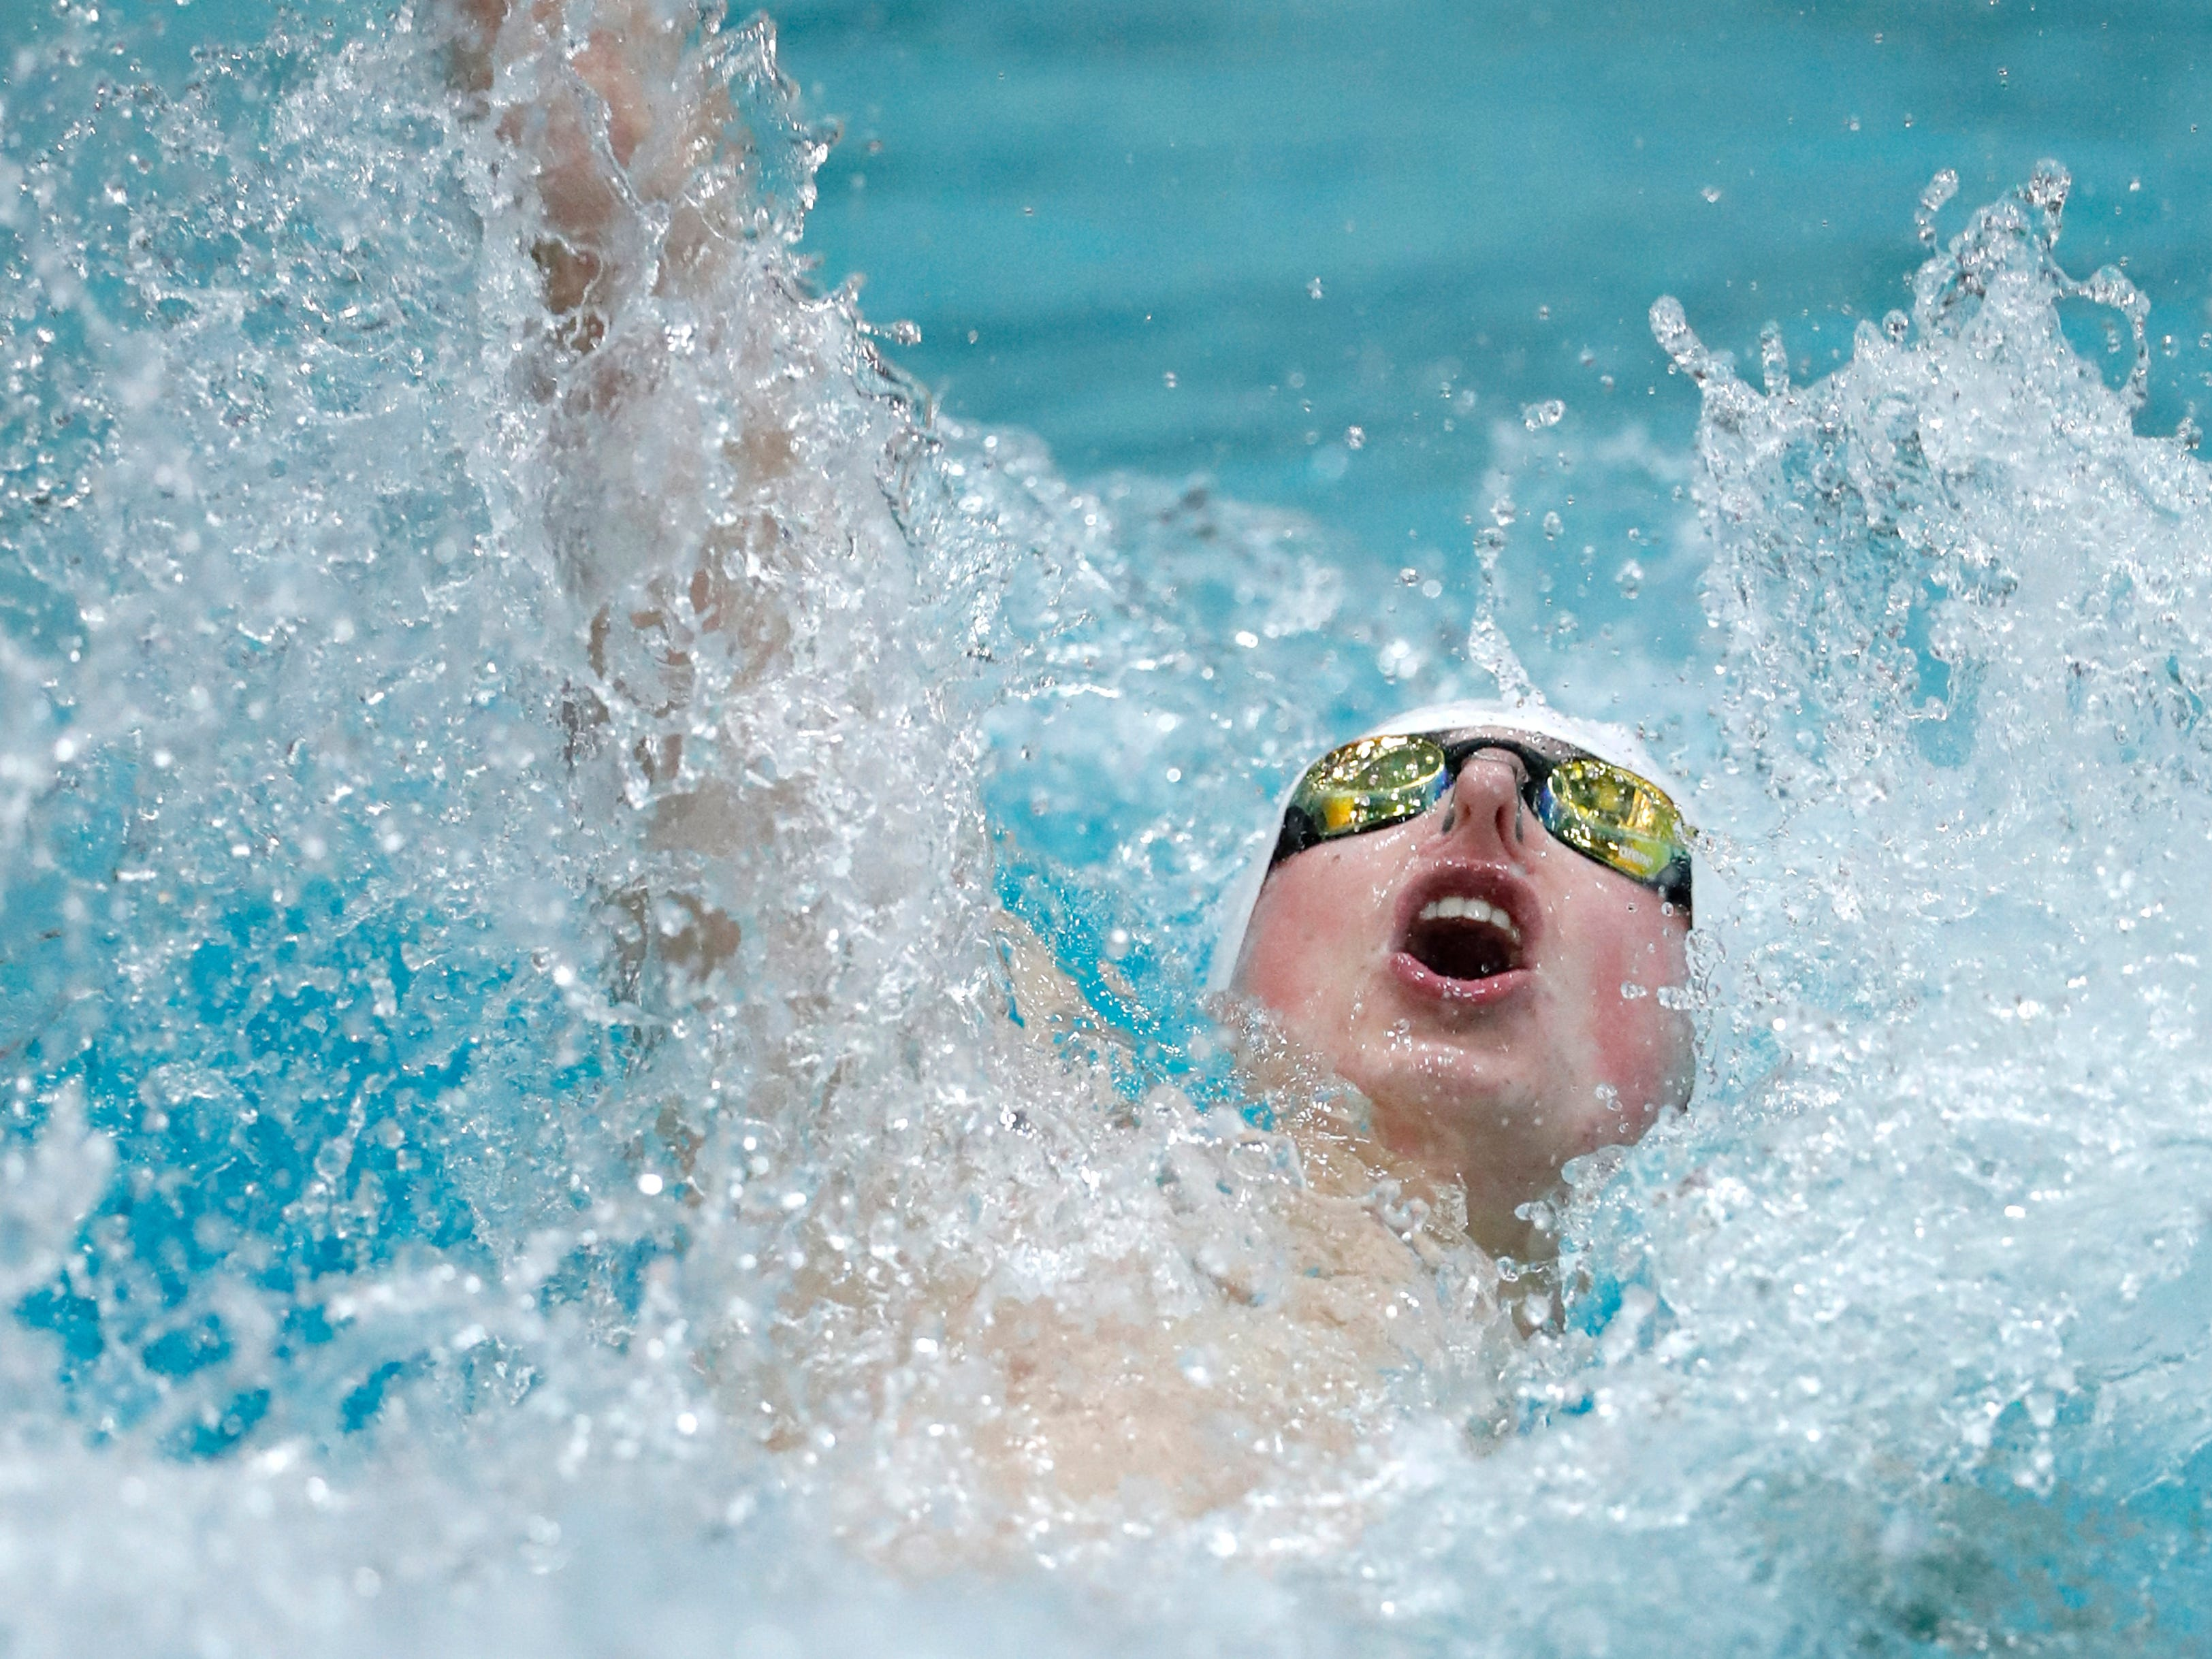 Arrowhead's Andrew Nixdorf betters the state mark of 48.84 seconds in the 100 backstroke with a time of 48.71 at the WIAA Division 1 state meet Saturday. Unfortunately for Nixdorf, though, two others swimmers beat the record, too, as Madison West's Wes Jekel won in 48.09 and Hudson's Shane Blinkman took second in 48.48.